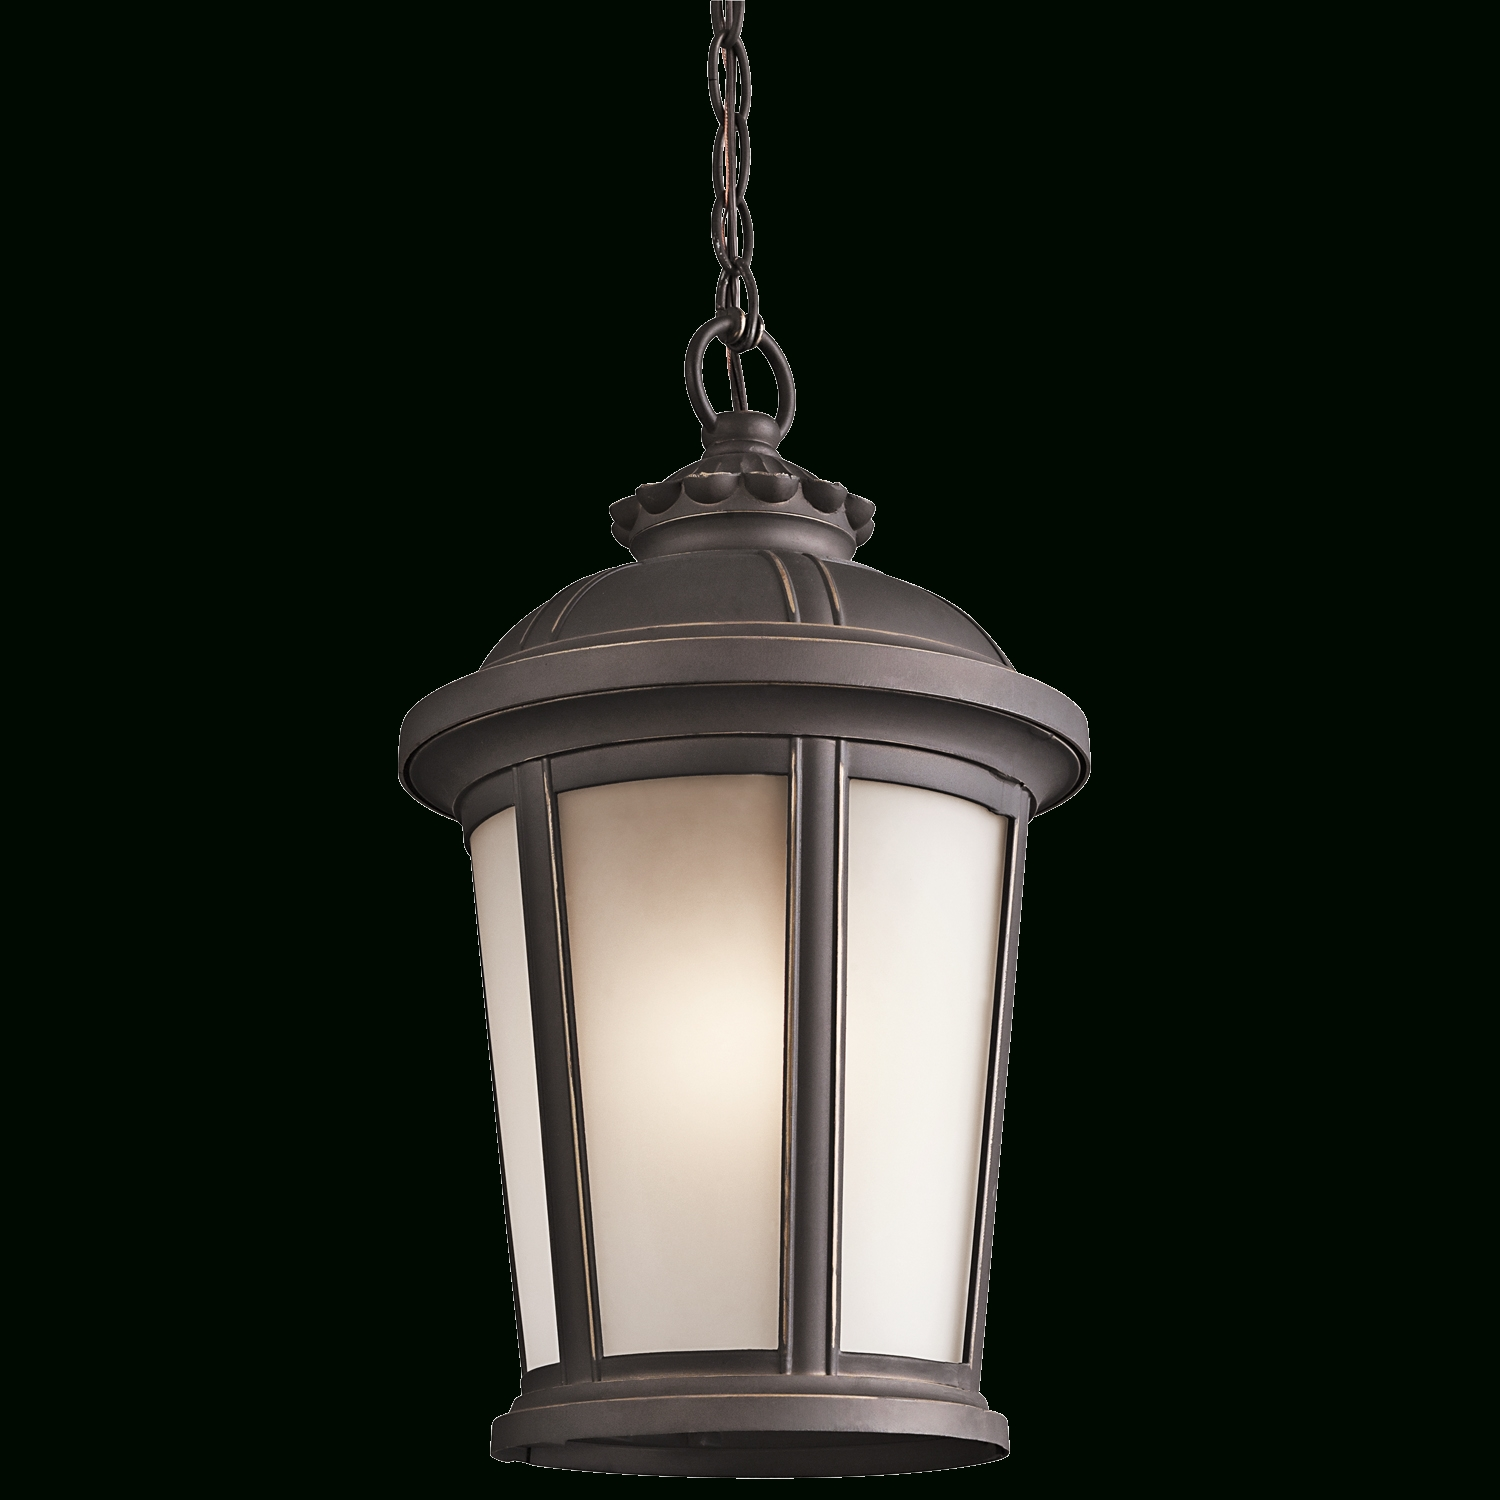 Ralston Collection 1 Light Outdoor Hanging Pendant In Rubbed Bronze Intended For Outdoor Hanging Ceiling Lights (View 15 of 15)